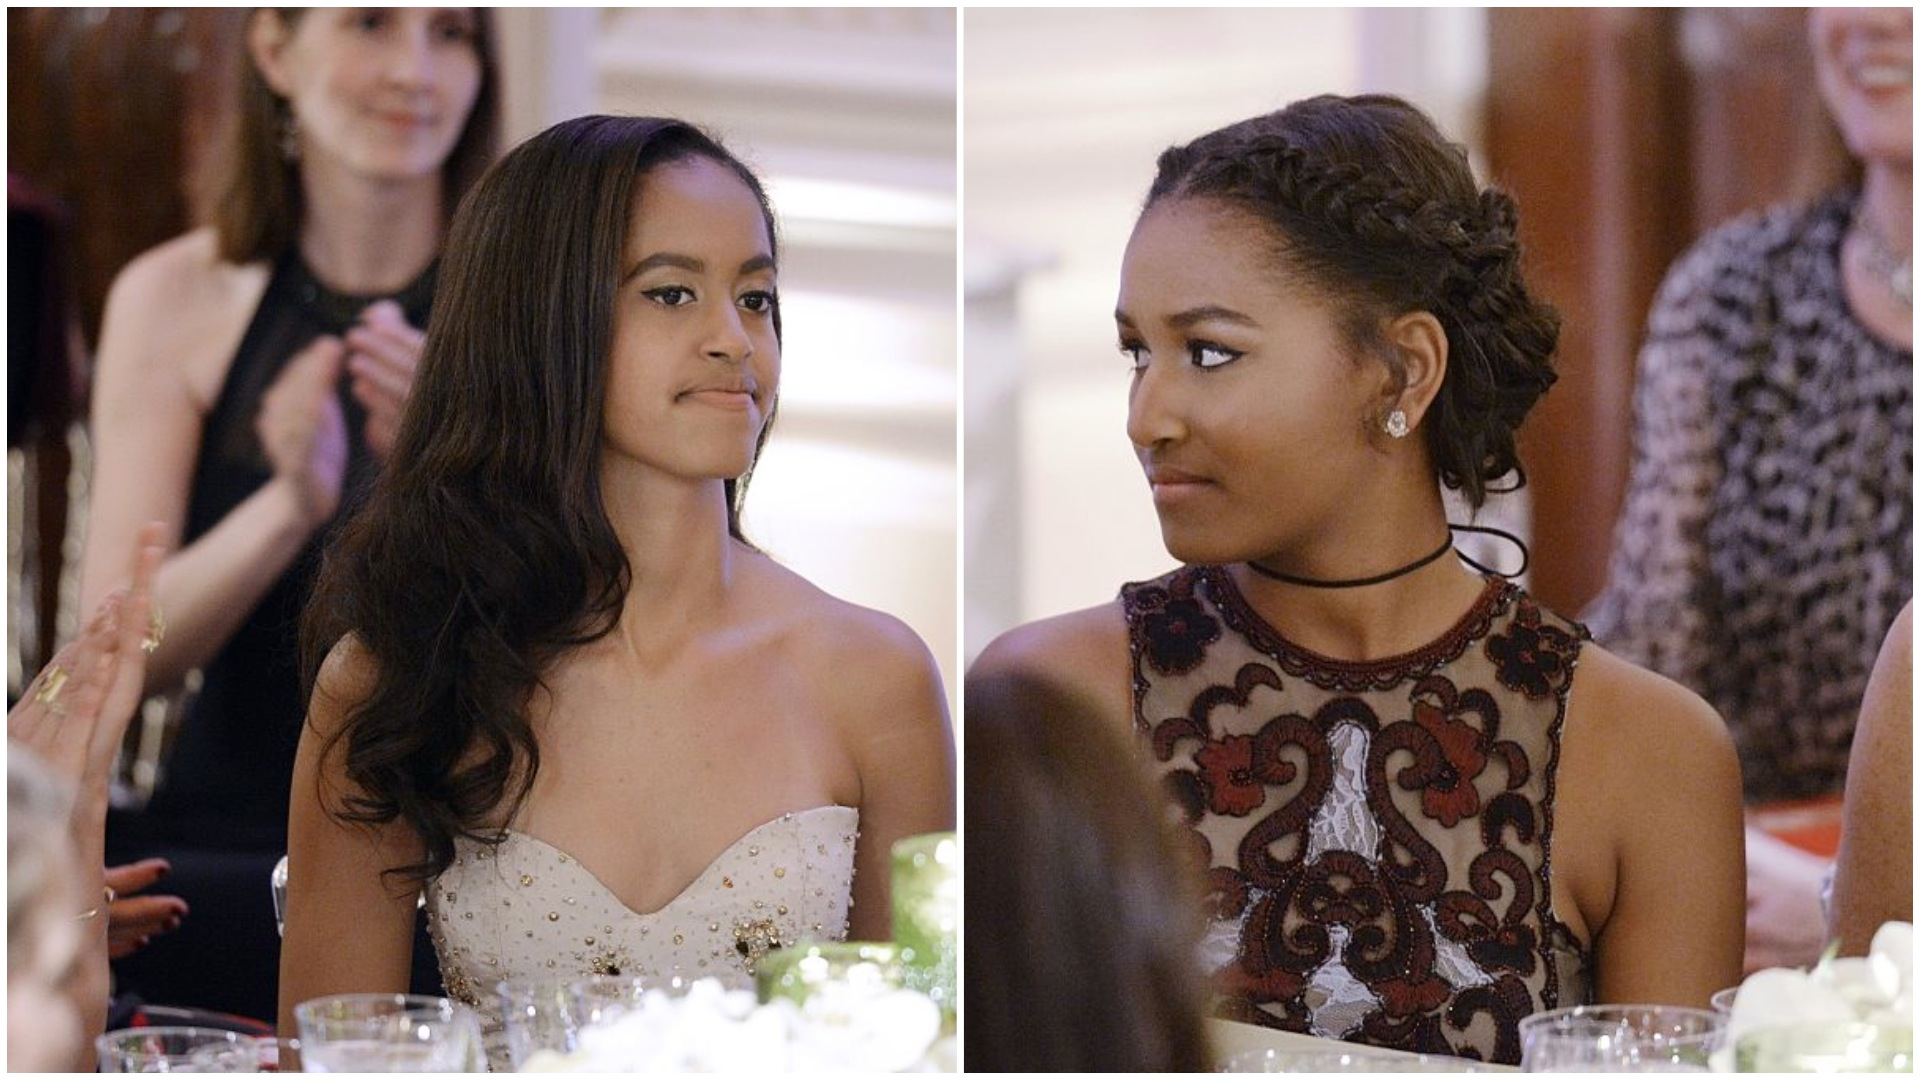 Let's talk about how amazing the Obama girls looked at their first state dinner